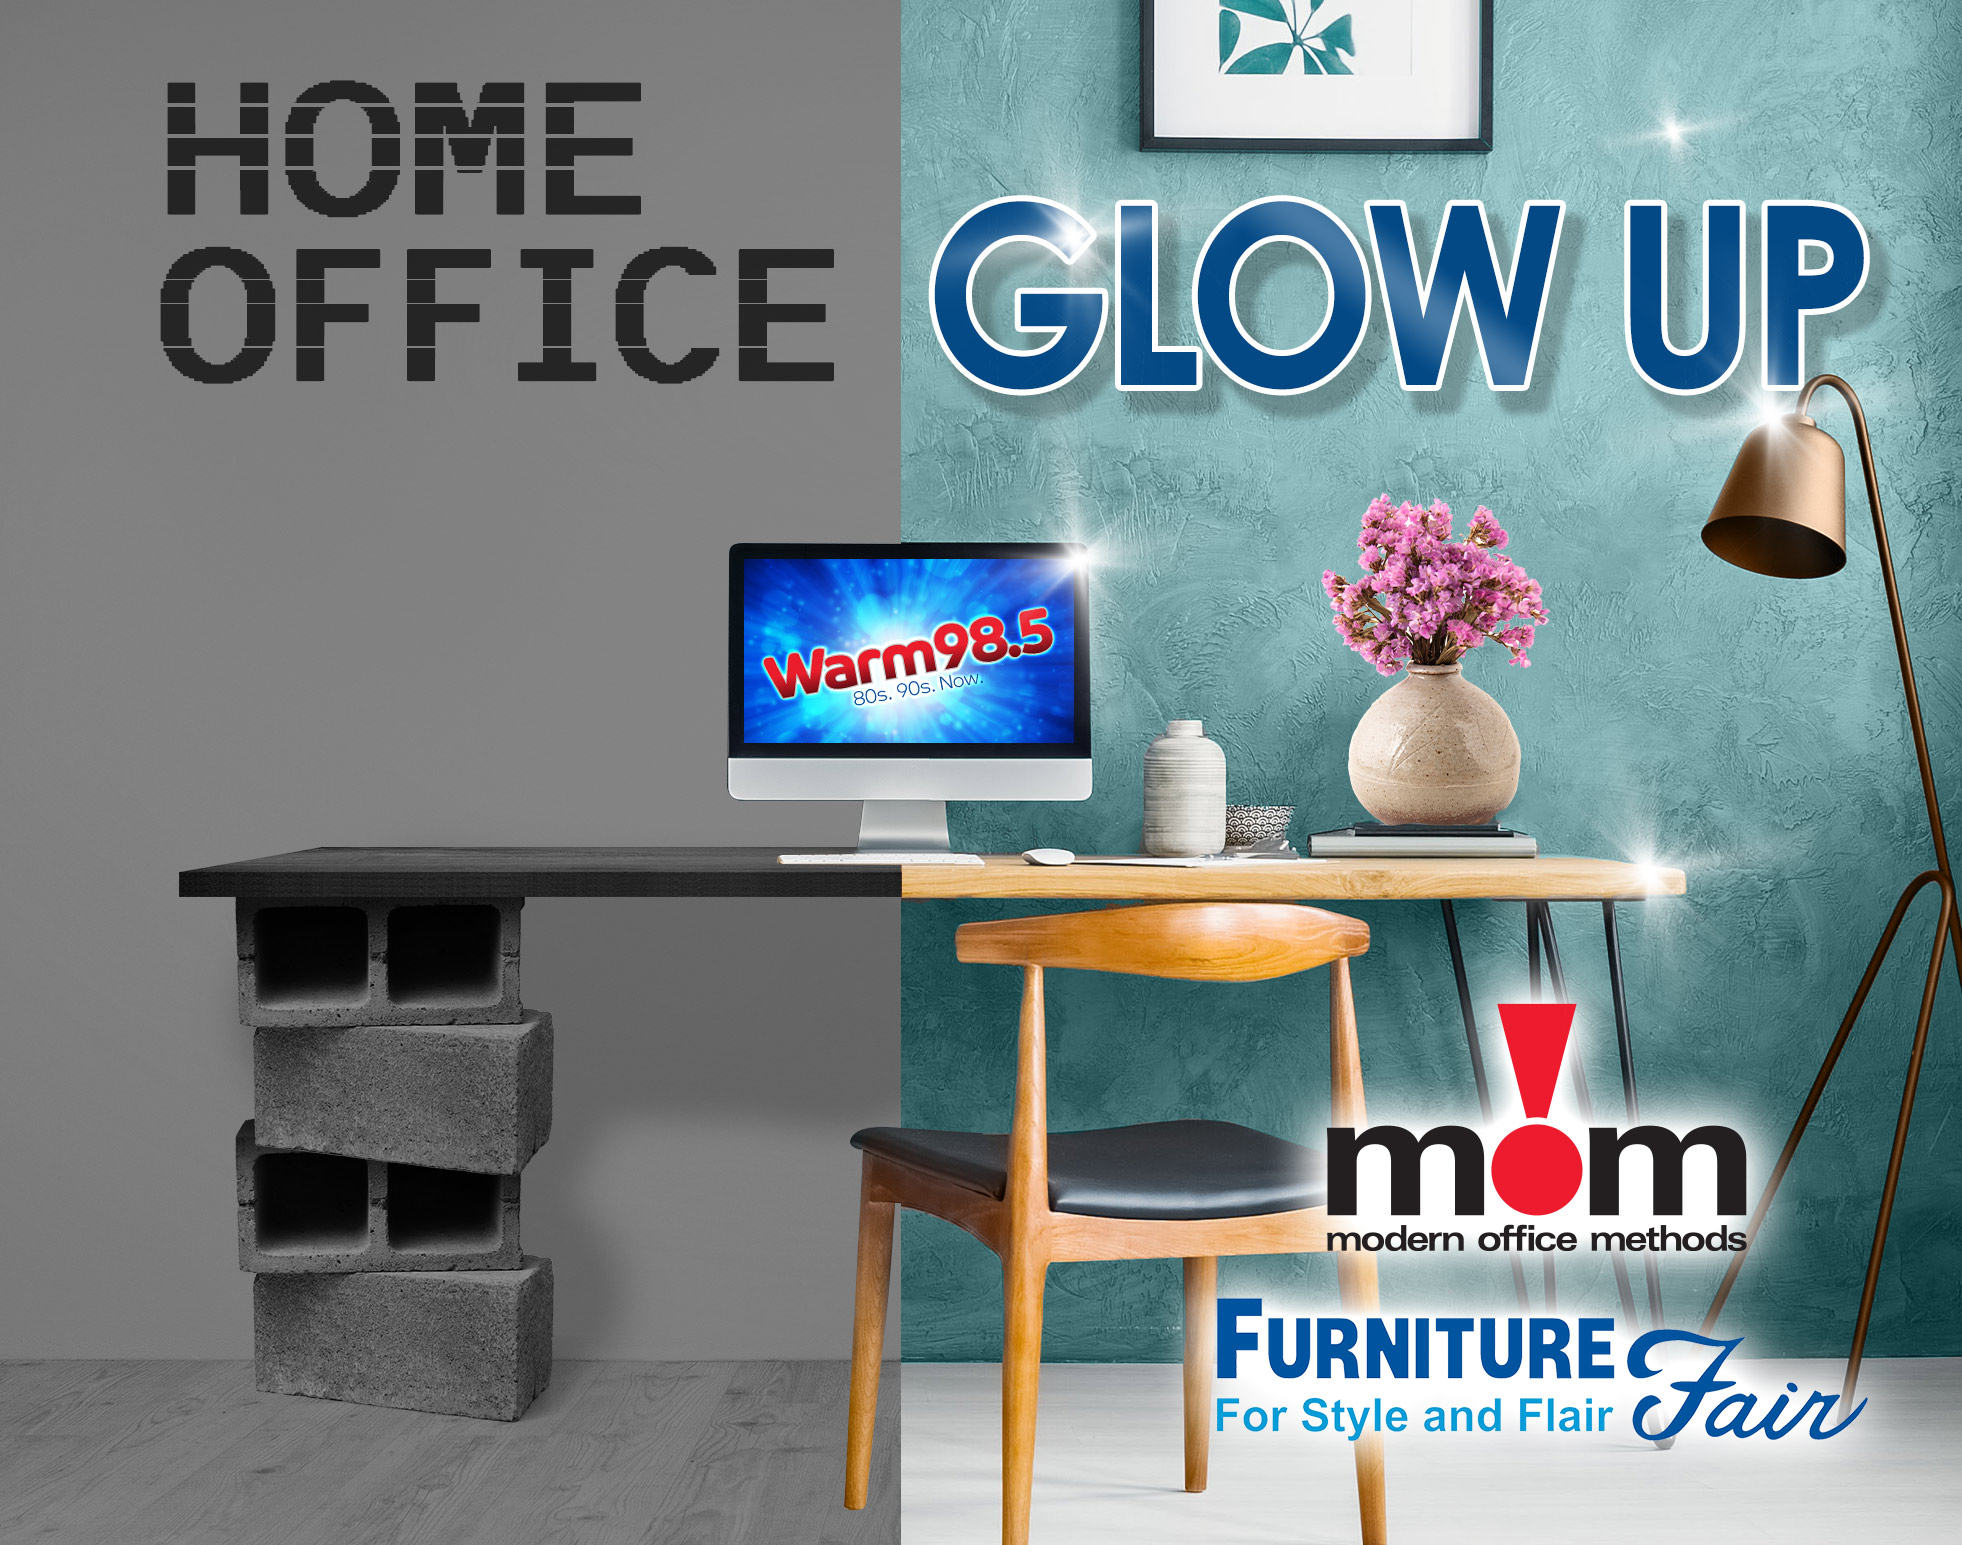 Home Office Glow Up!